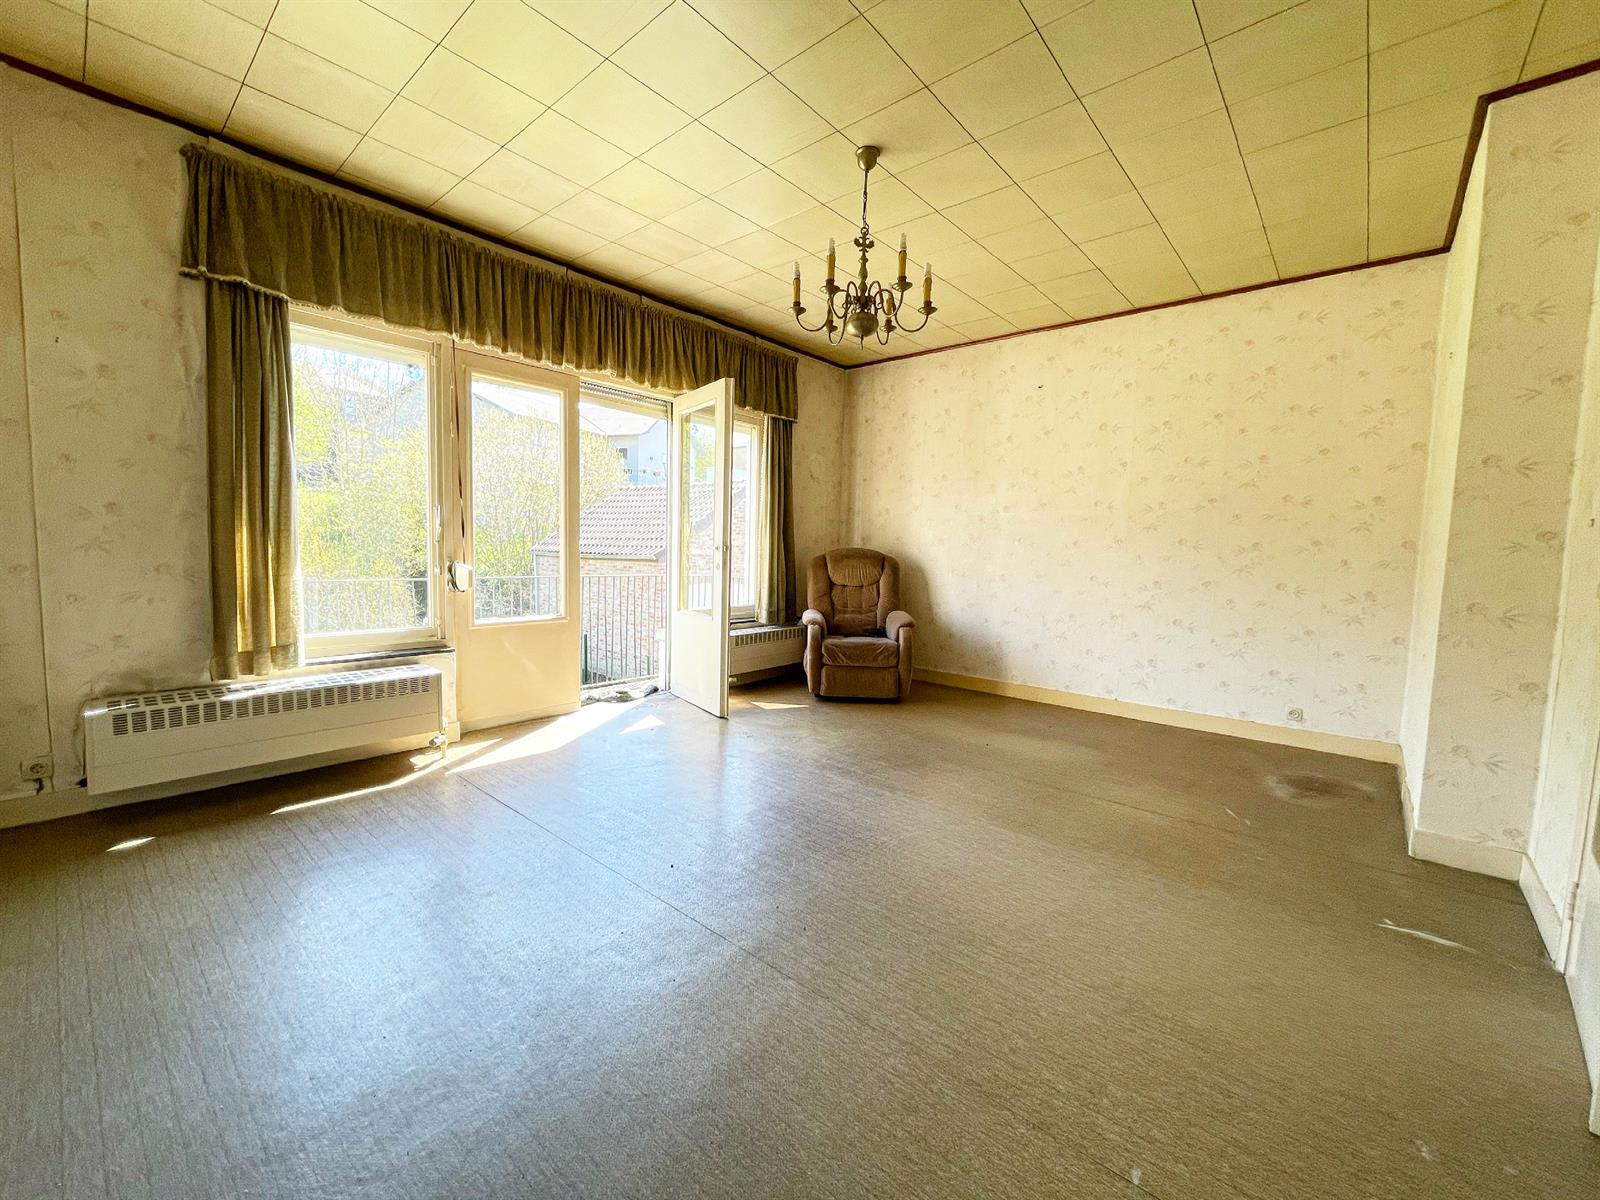 Huis - Flemalle - #4346611-20